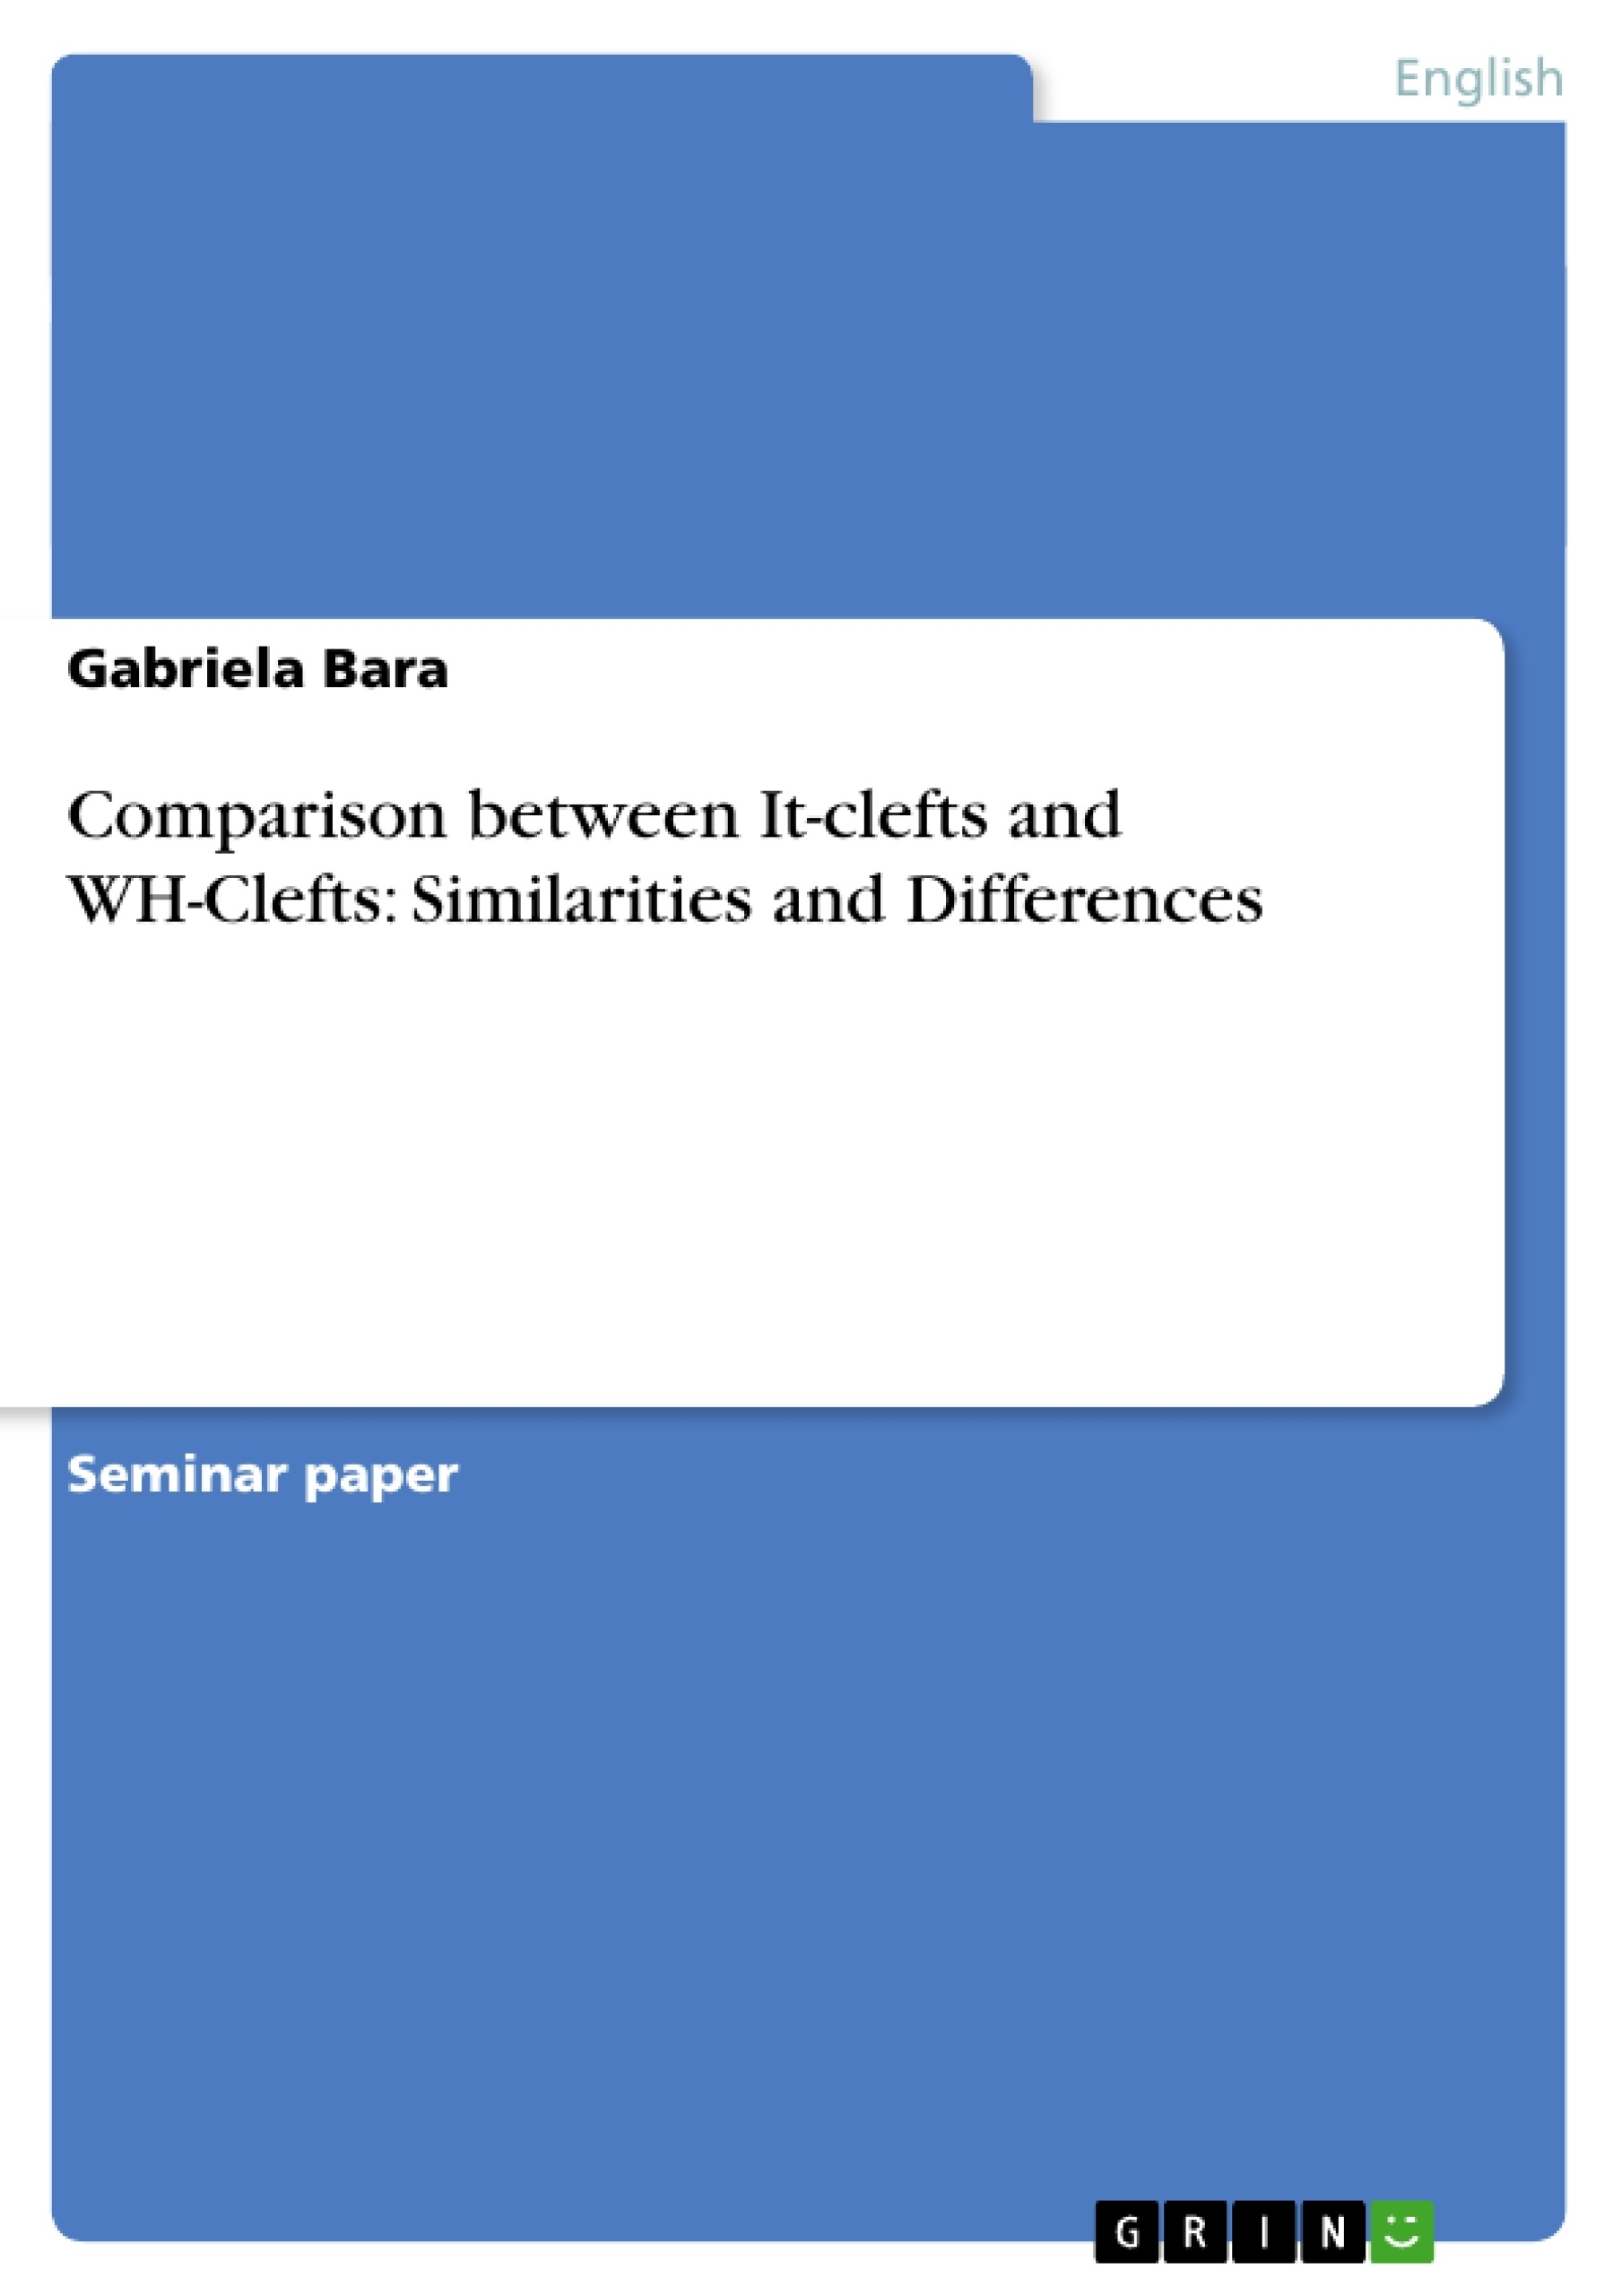 Title: Comparison between It-clefts and WH-Clefts: Similarities and Differences